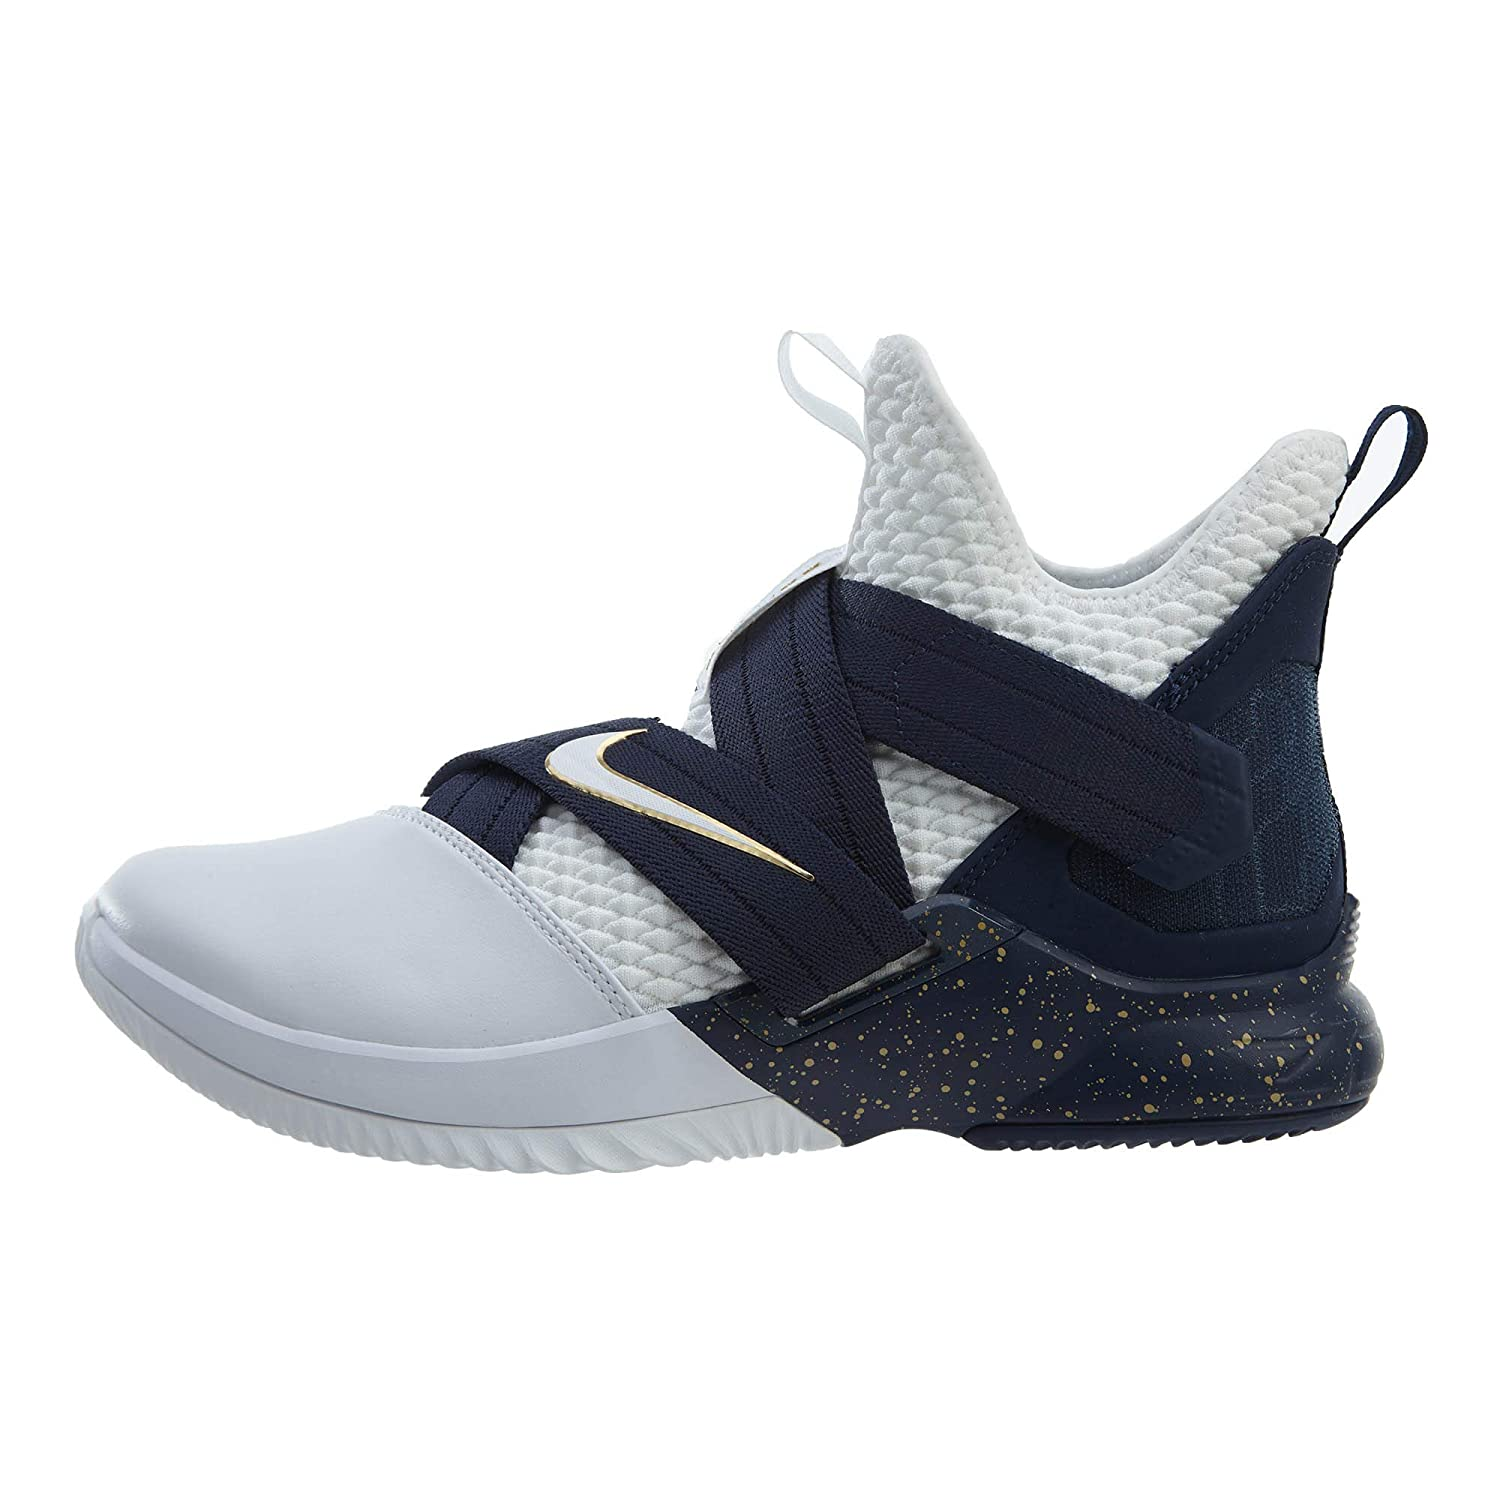 030a3449fdc87 Nike Lebron Soldier XII SFG Mens Basketball-Shoes AO4054-100_10.5 - White/ White-Midnight Navy-Mineral Yellow: Amazon.de: Schuhe & Handtaschen